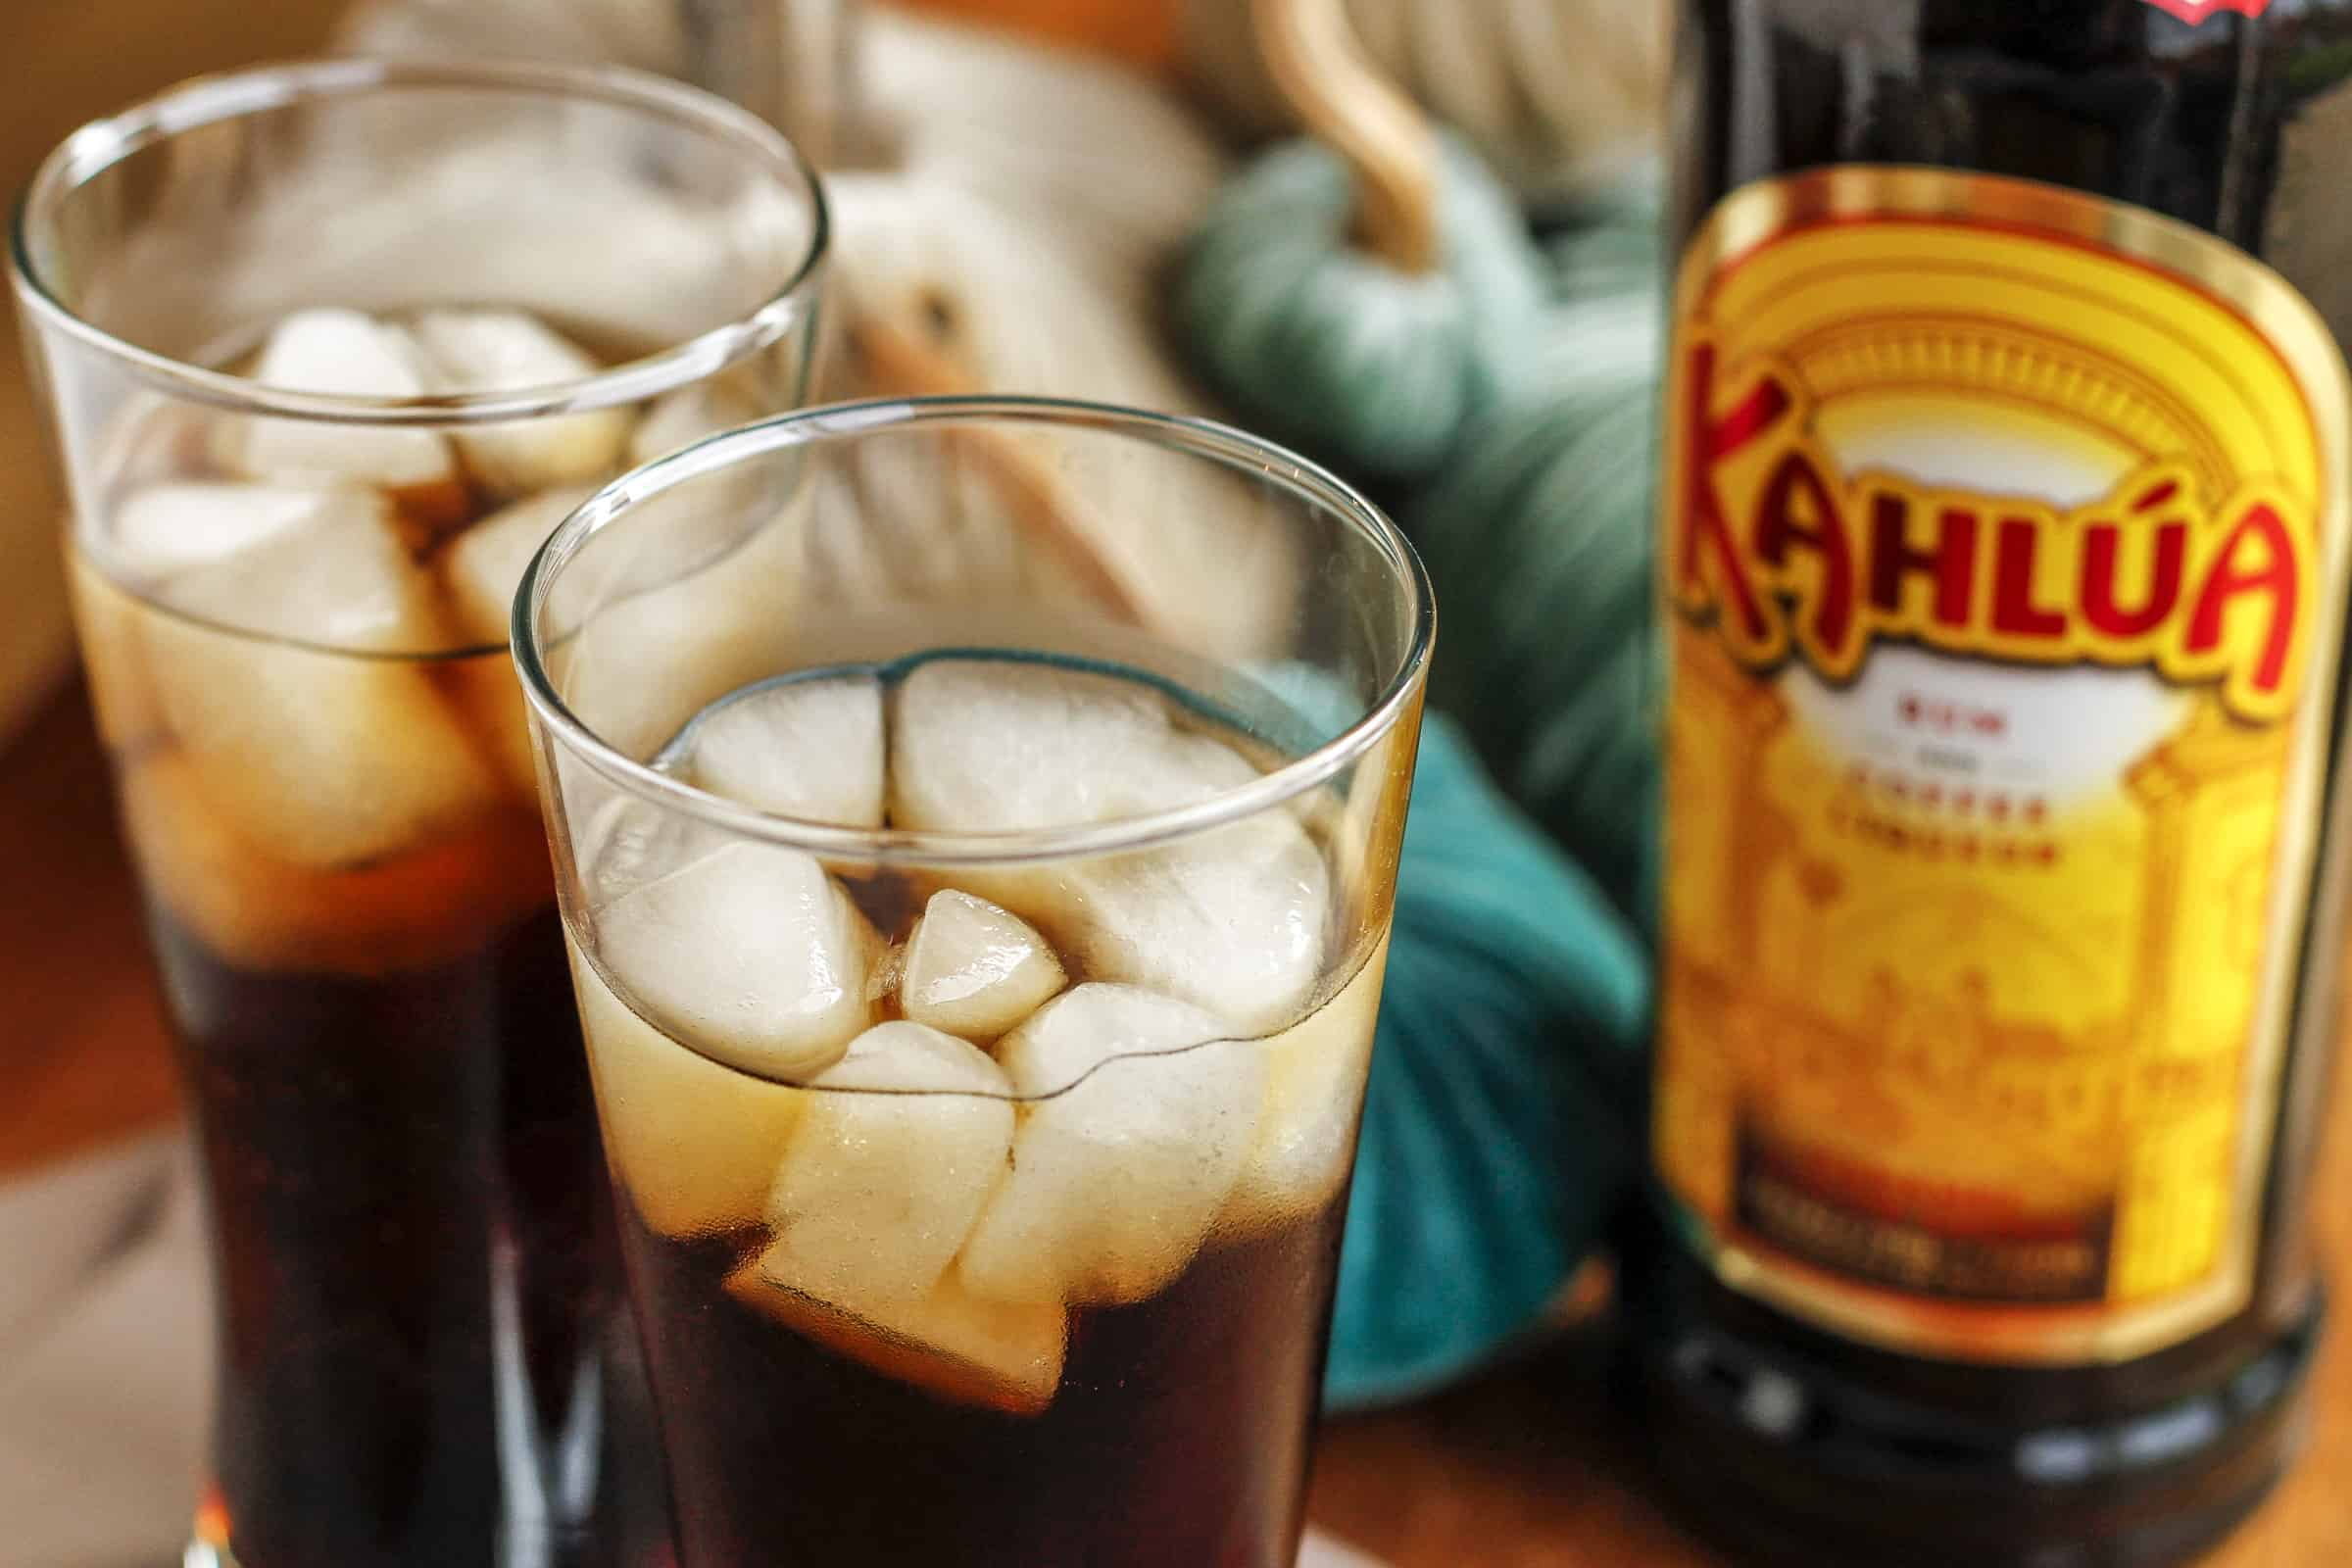 Kahlua Club Soda